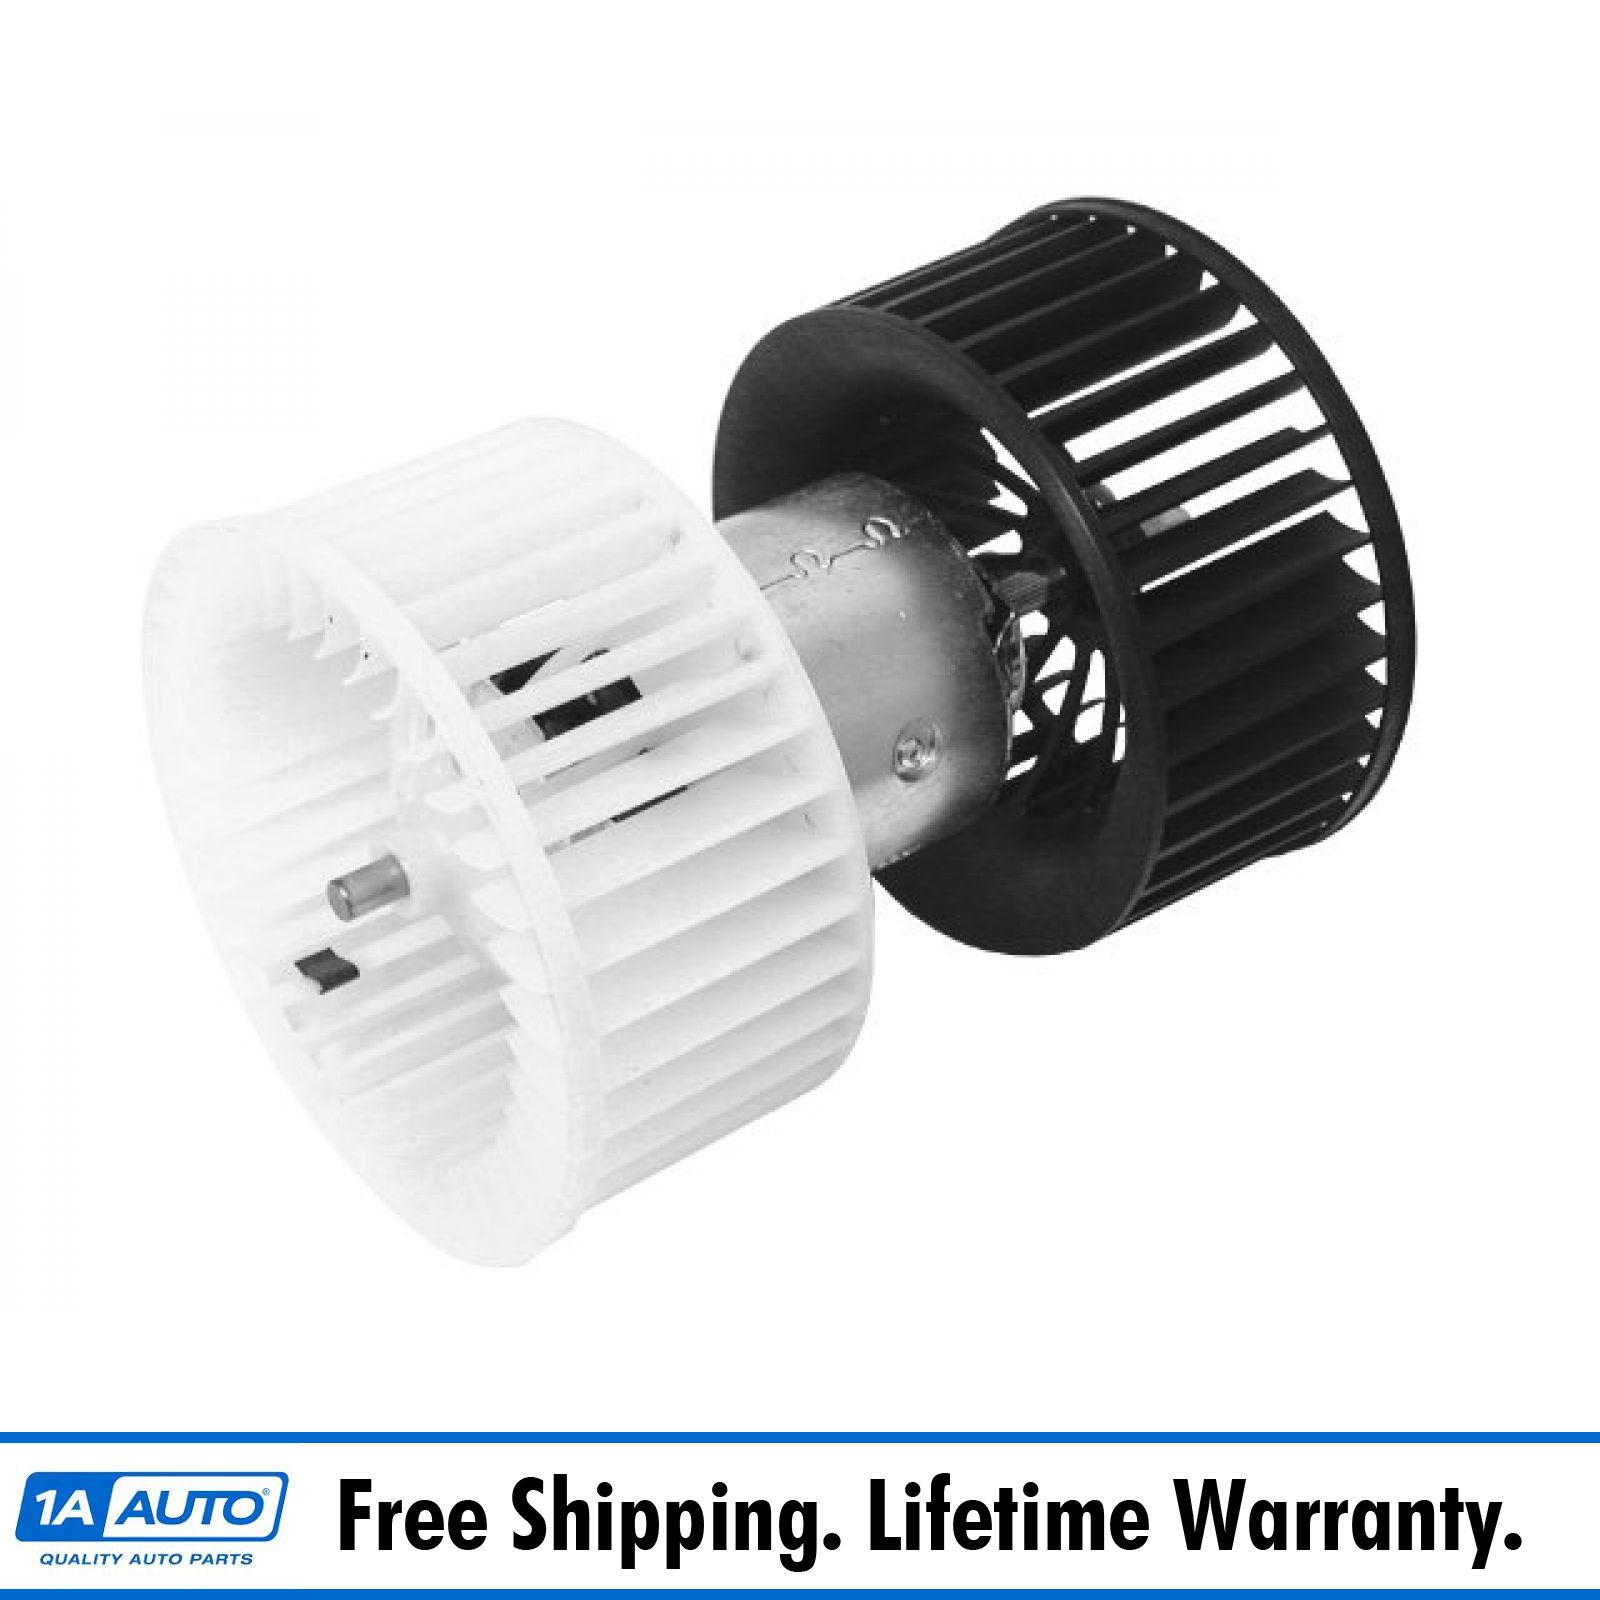 Heater Blower Motor W/ Dual Fan Cage For BMW 3 Series M3